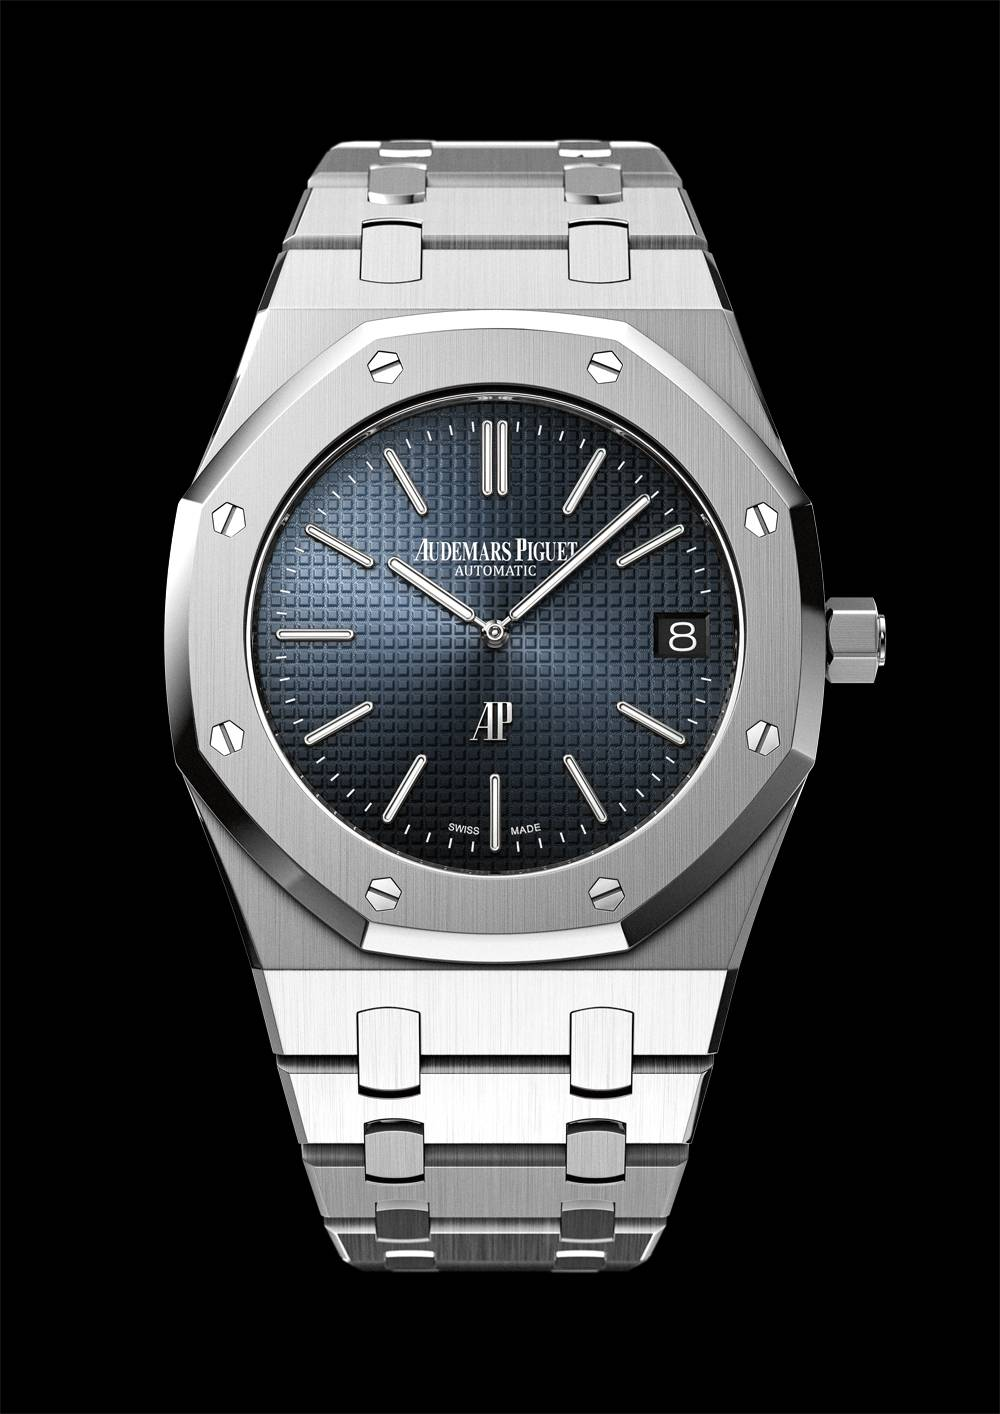 HAUTE TIME: THE AUDEMARS PIGUET ROYAL OAK 39MM